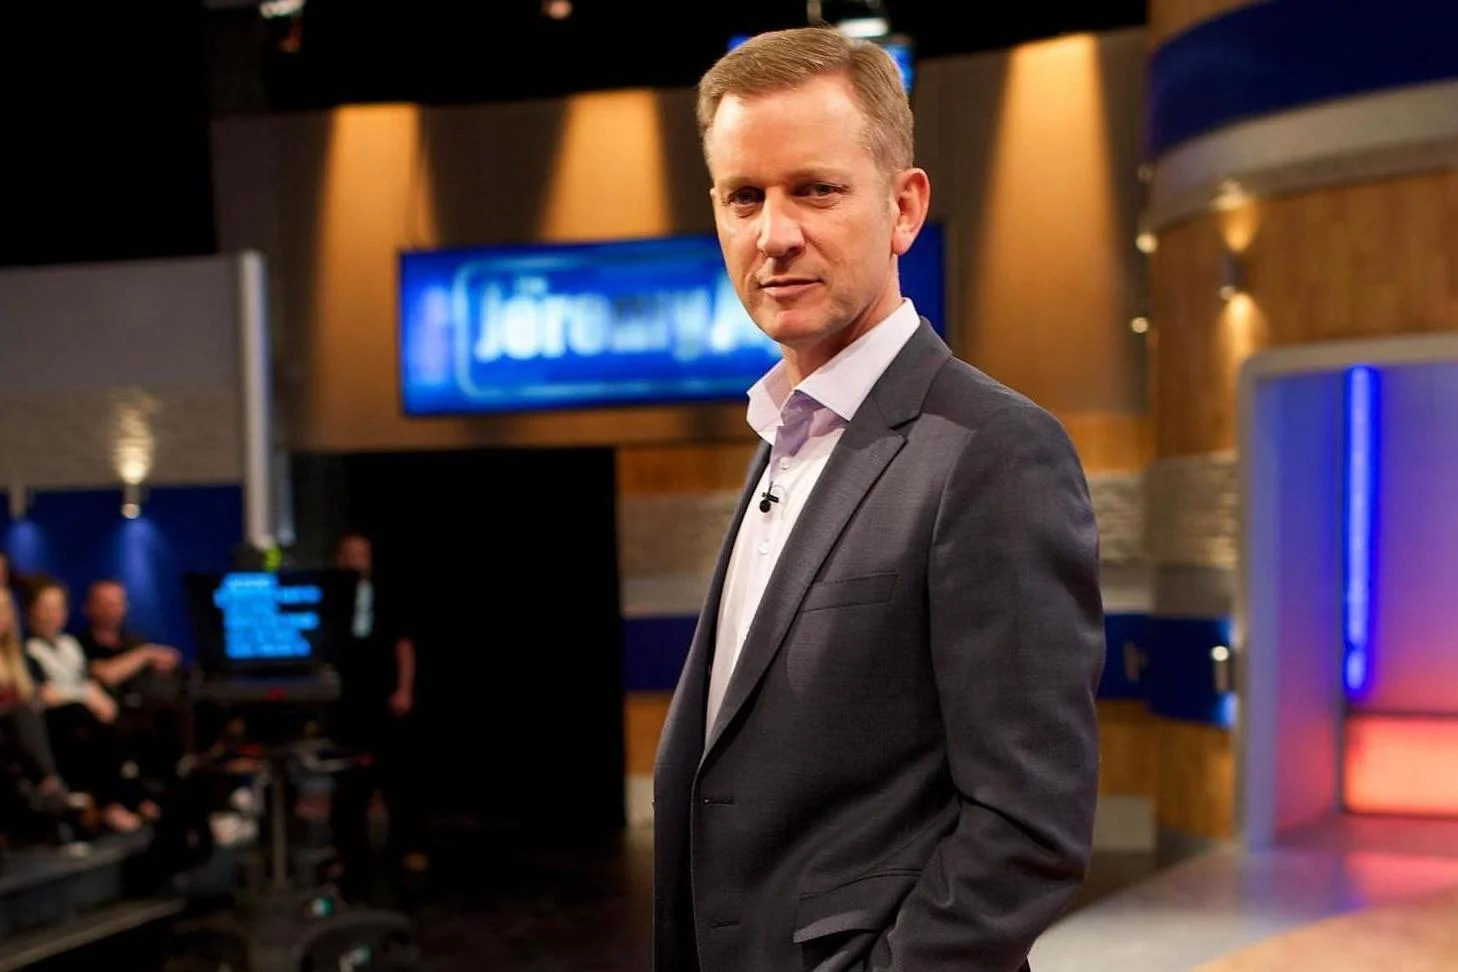 jeremykyleshow14a Former Jeremy Kyle producer claims staff altered lie detector results to make show more 'dramatic'